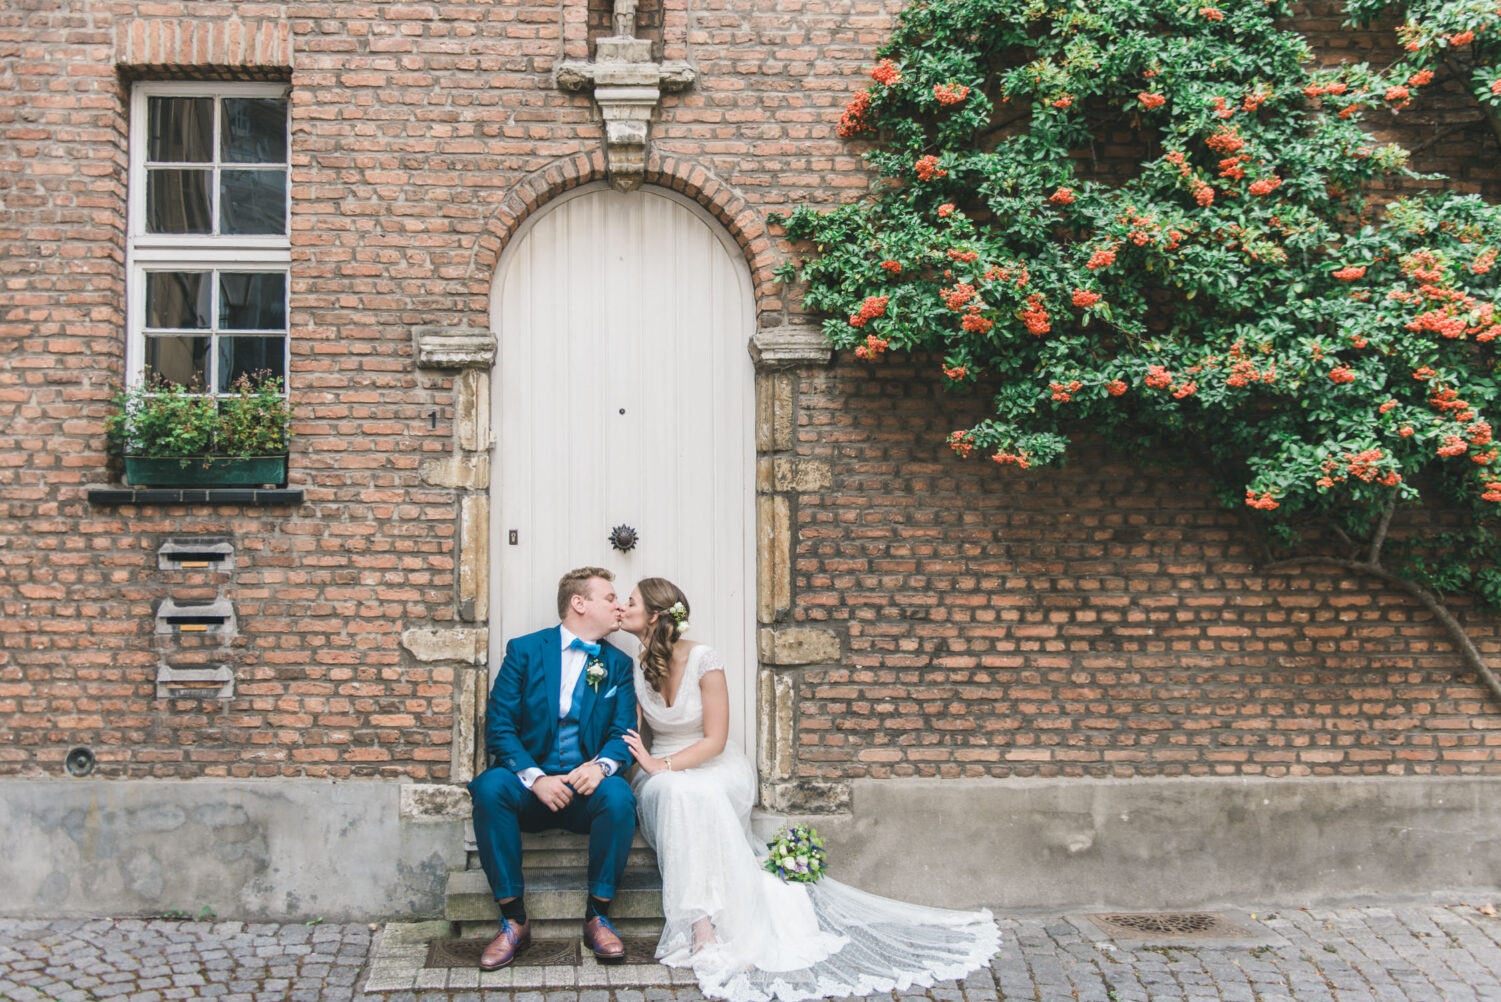 Wedding photography of a bride and groom in the picturesque city of Mechelen.